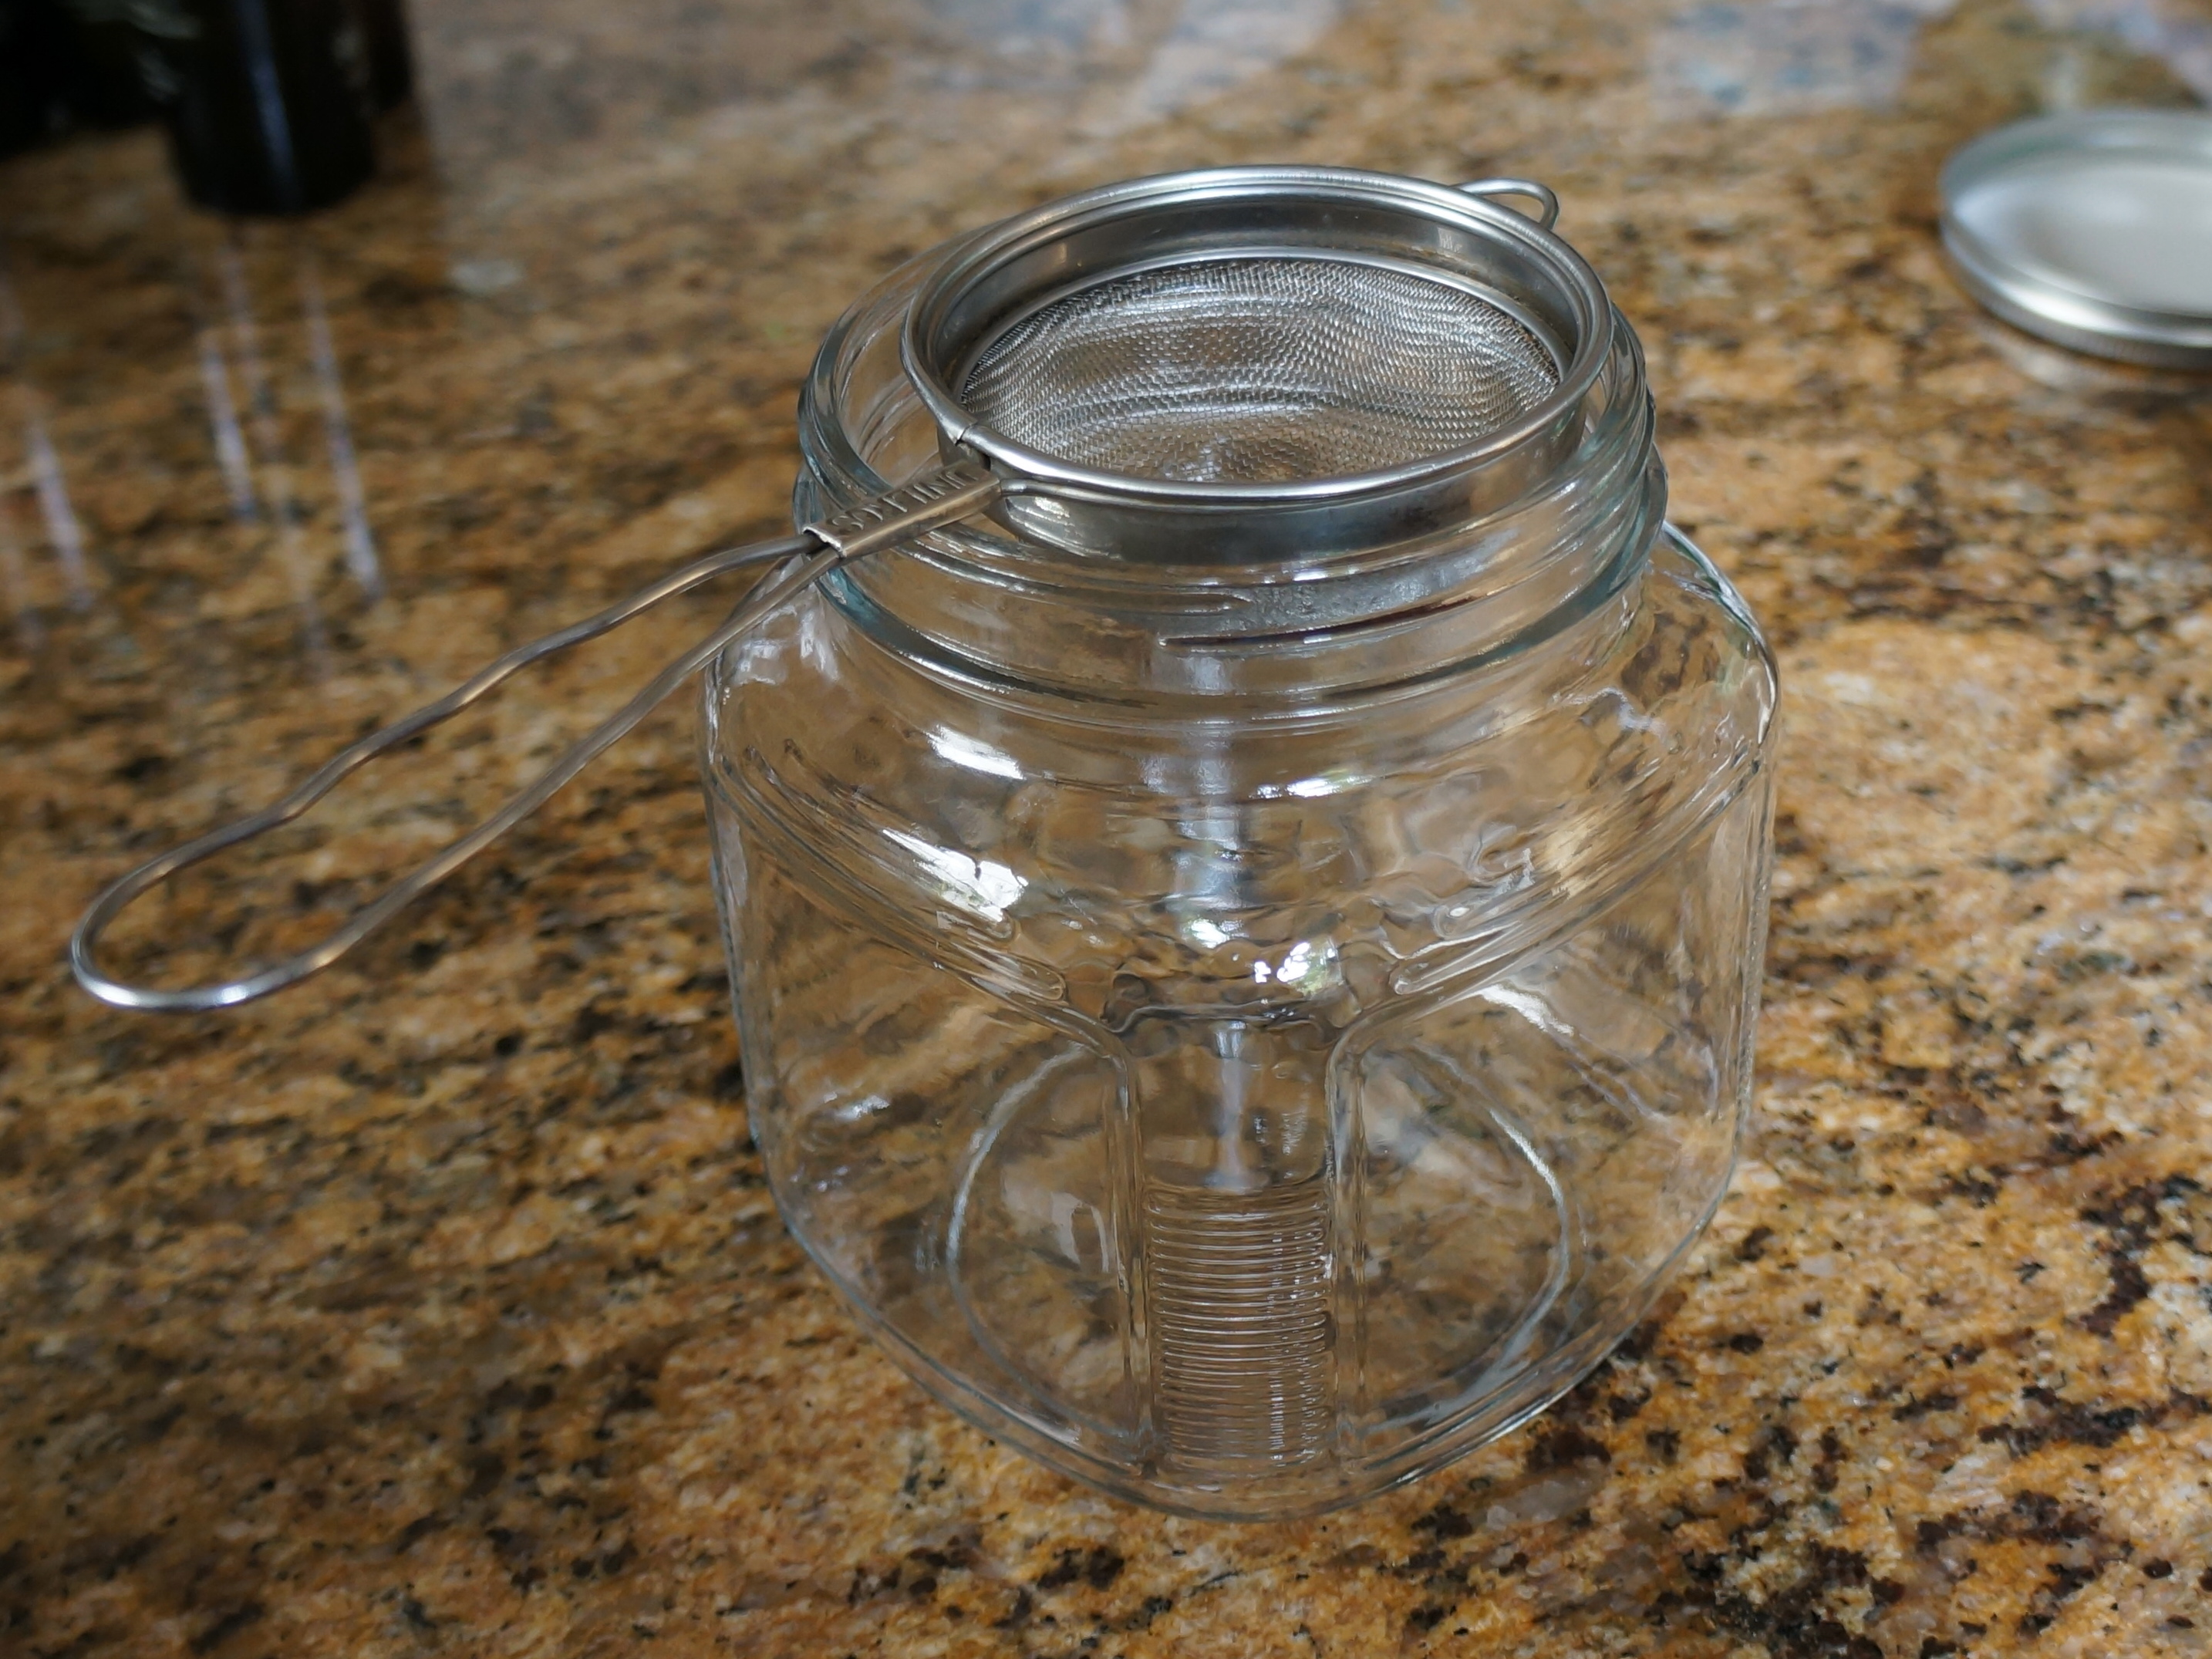 My glass jar and metal strainer